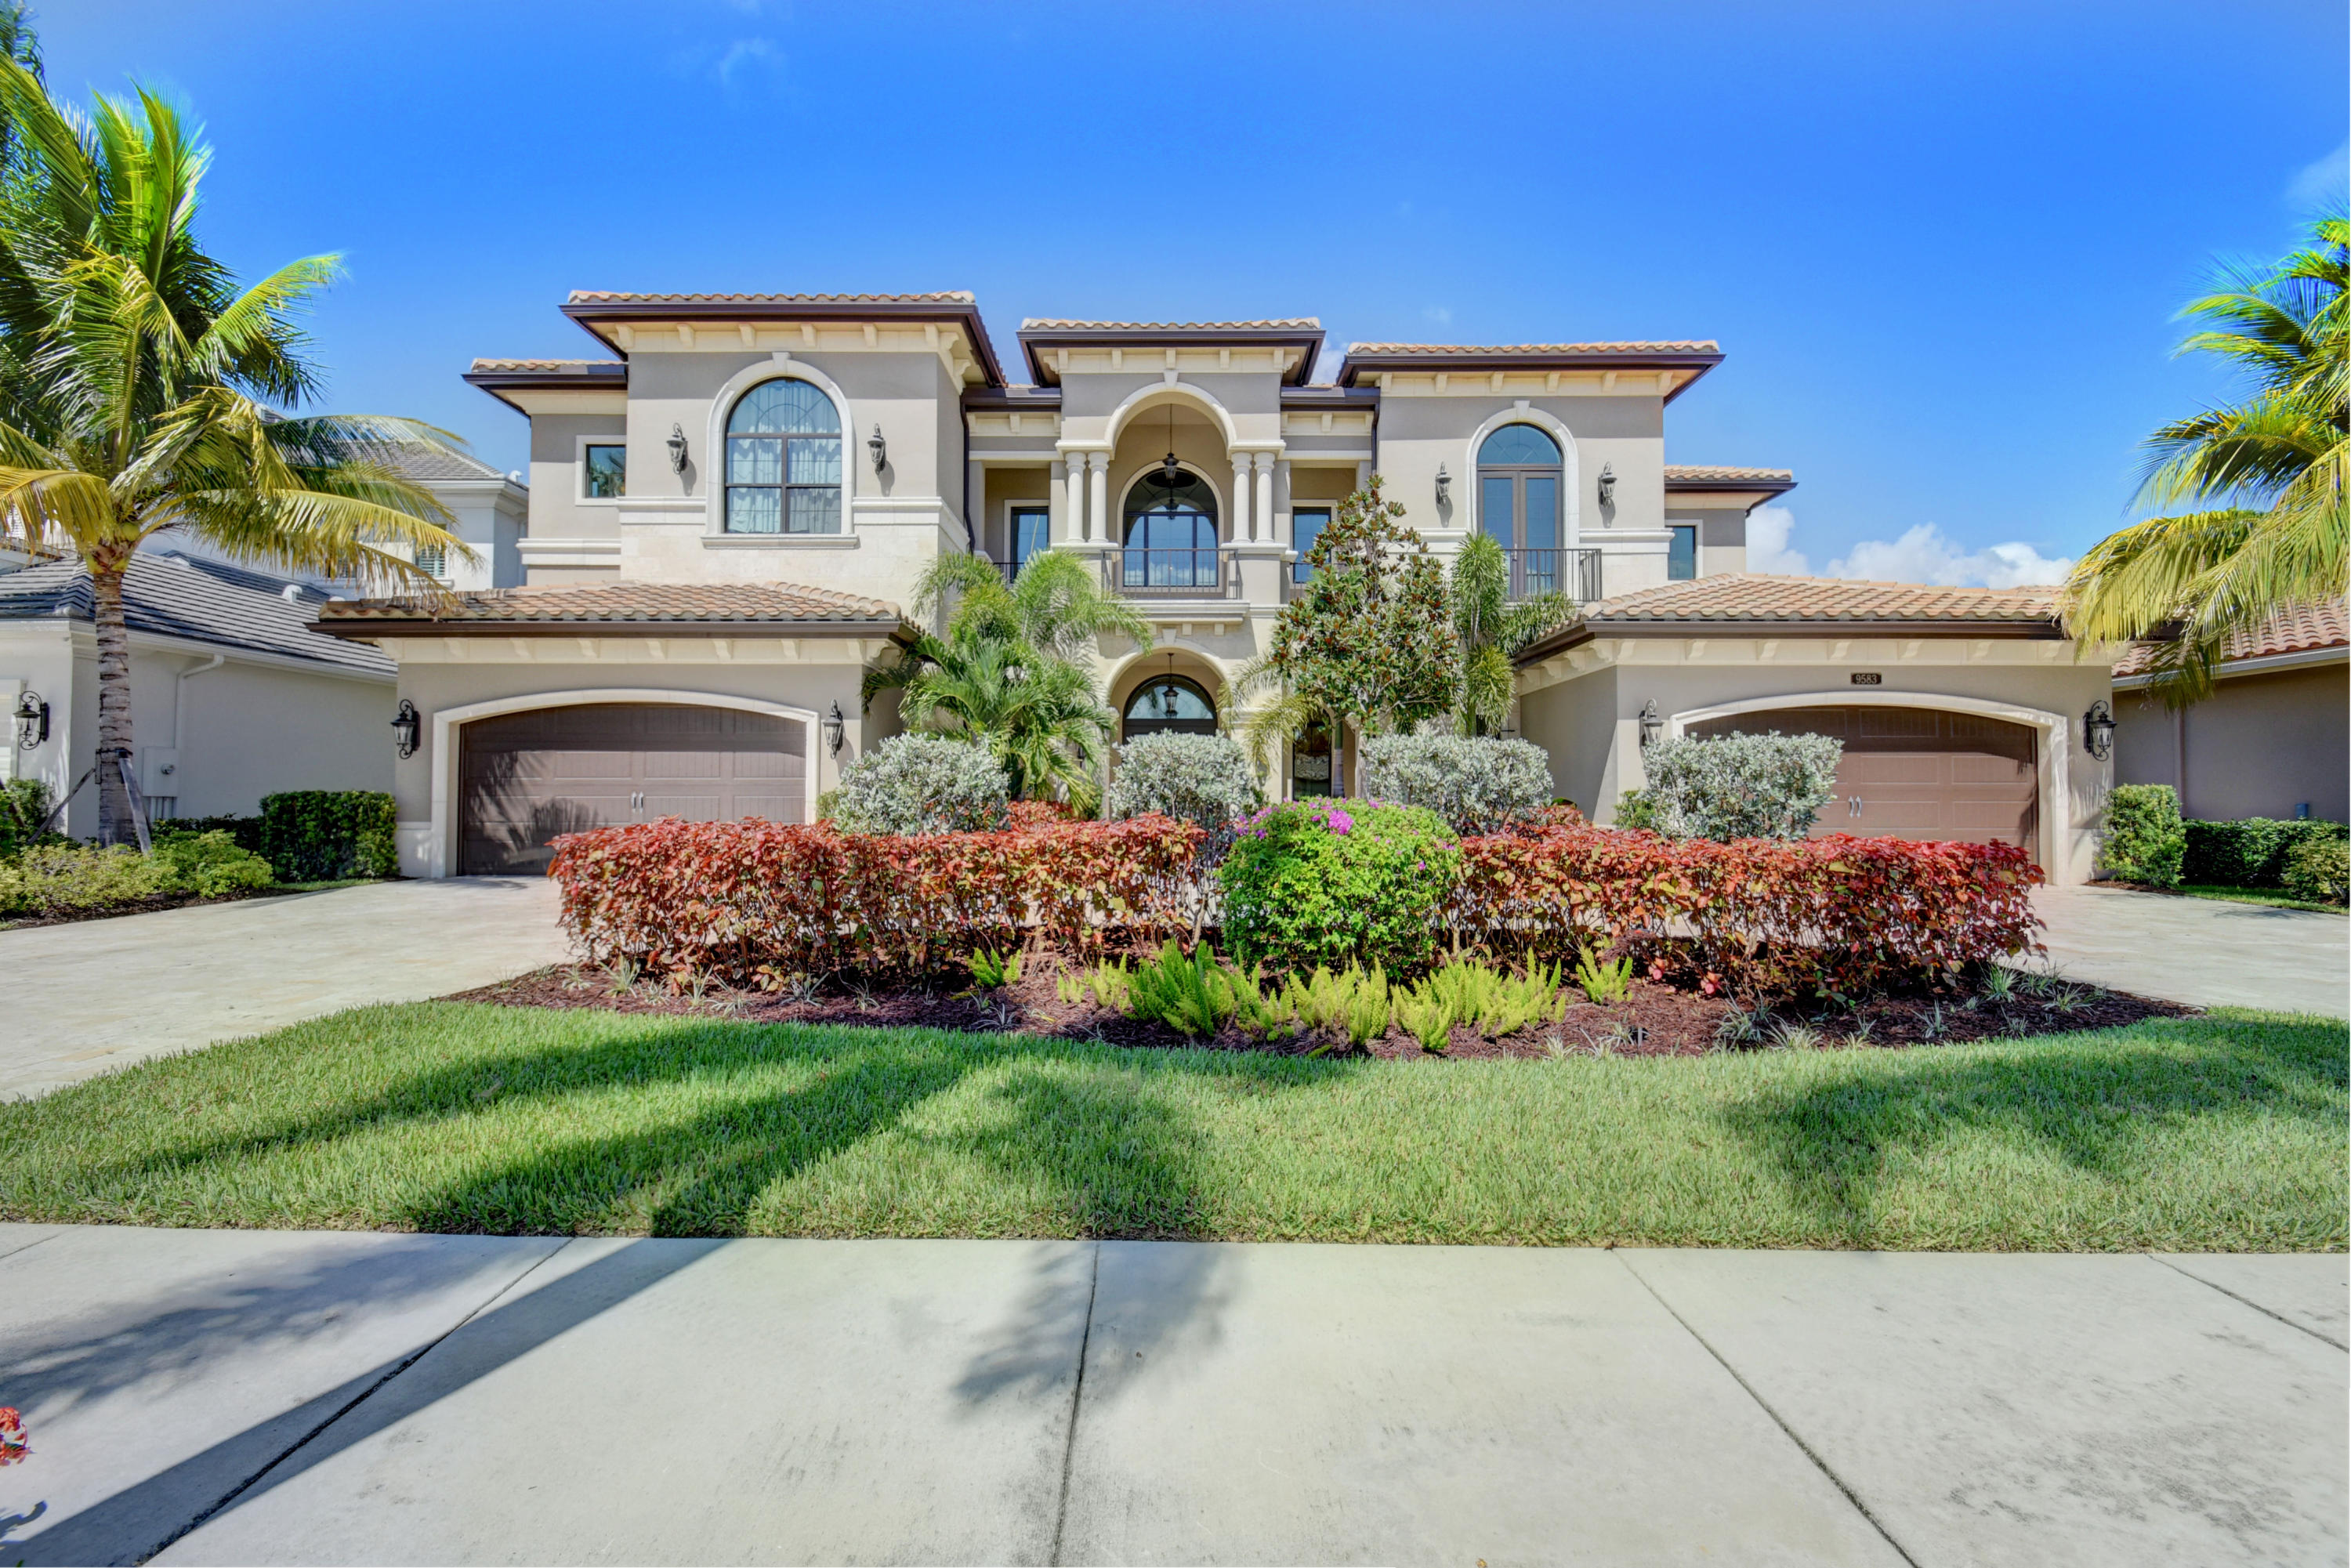 BREATHTAKING PALAZZO MODEL  SITUATED ON 1/3  OF AN ACRE OF FENCED IN PROPERTY.  AMAZING VIEWS FROM EVERY WINDOW. NO REAR NEIGHBORS!   BEAUTIFUL LAKE LOT W  HEATED POOL & JACUZZI.  THE  SUMMER KITCHEN MAKES THIS HOME AN ENTERTAINER'S DREAM. MAJESTIC CIRC DRIVEWAY W MARBLE PAVERS WHICH EXTEND THRUOUT THE PROPERTY.  MOVE RIGHT INTO THIS 6 BR, 6 FULL & 2 HALF BTH HOME. GOURMET KITCHEN WHICH INCLUDES  2 WOLF OVENS,  GAS STOVE W GRILLE!  OVERSIZED HOOD, 2 DISHWASHERS, BUILT IN WOLF ESPRESSO MAKER ! ETCHED GLASS FRONT DOOR.   CLUB ROOM W BAR & WINE FRIG., THEATER ROOM W/5 CHAIRS!  2 LAUNDRY RMS., CUSTOM CLOSETS, MARBLE FLOORS! UPGRADED WOOD FLOOR STAIRCASE & BANNISTER! IMPACT GLASS! CROWN MOLDING! CEN VAC! HUGE MASTER BR INCLUDES  CAL. CLOSETS!  TERRACE! MASTER BTH W/ HIS & HER TOILETS!CLICK  MOR HERE IS YOUR OPPORTUNITY TO HAVE COUNTRY CLUB LIVING W/OUT COUNTRY CLUB FEES. EXPERIENCE THE TREMENDOUS LIFESTYLE & ENJOY ALL THE AMENITIES THAT THE SEVEN BRIDGES HAS TO OFFER. SEVEN BRIDGES IN DELRAY BEACH IS THE ULTIMATE LUXURY COMMUNITY THAT HAS IT ALL.  ONE OF FLORIDA'S MOST ELEGANT NEIGHBORHOODS. THERE IS A BREATHTAKING ENTRY, GORGEOUS RESIDENCES & WORLD CLASS AMENITIES.  BEAUTIFUL STATE OF THE ART 30,000 SQUARE FT.  CLUBHOUSE WHICH HAS AN ON SITE RESTAURANT, RESORT STYLE POOLS, GYM, INDOOR AND OUTDOOR BASKETBALL COURT, 13 TENNIS COURTS WITH AN ON SIGHT TENNIS PRO. WATER PARK! EXERCISE CLASSES ARE INCLUDED IN HOA! RELAX IN SAUNAS AND MASSAGE ROOM. GREAT SCHOOLS! MINUTES FROM DELRAY MARKETPLACE AND BEACHES!